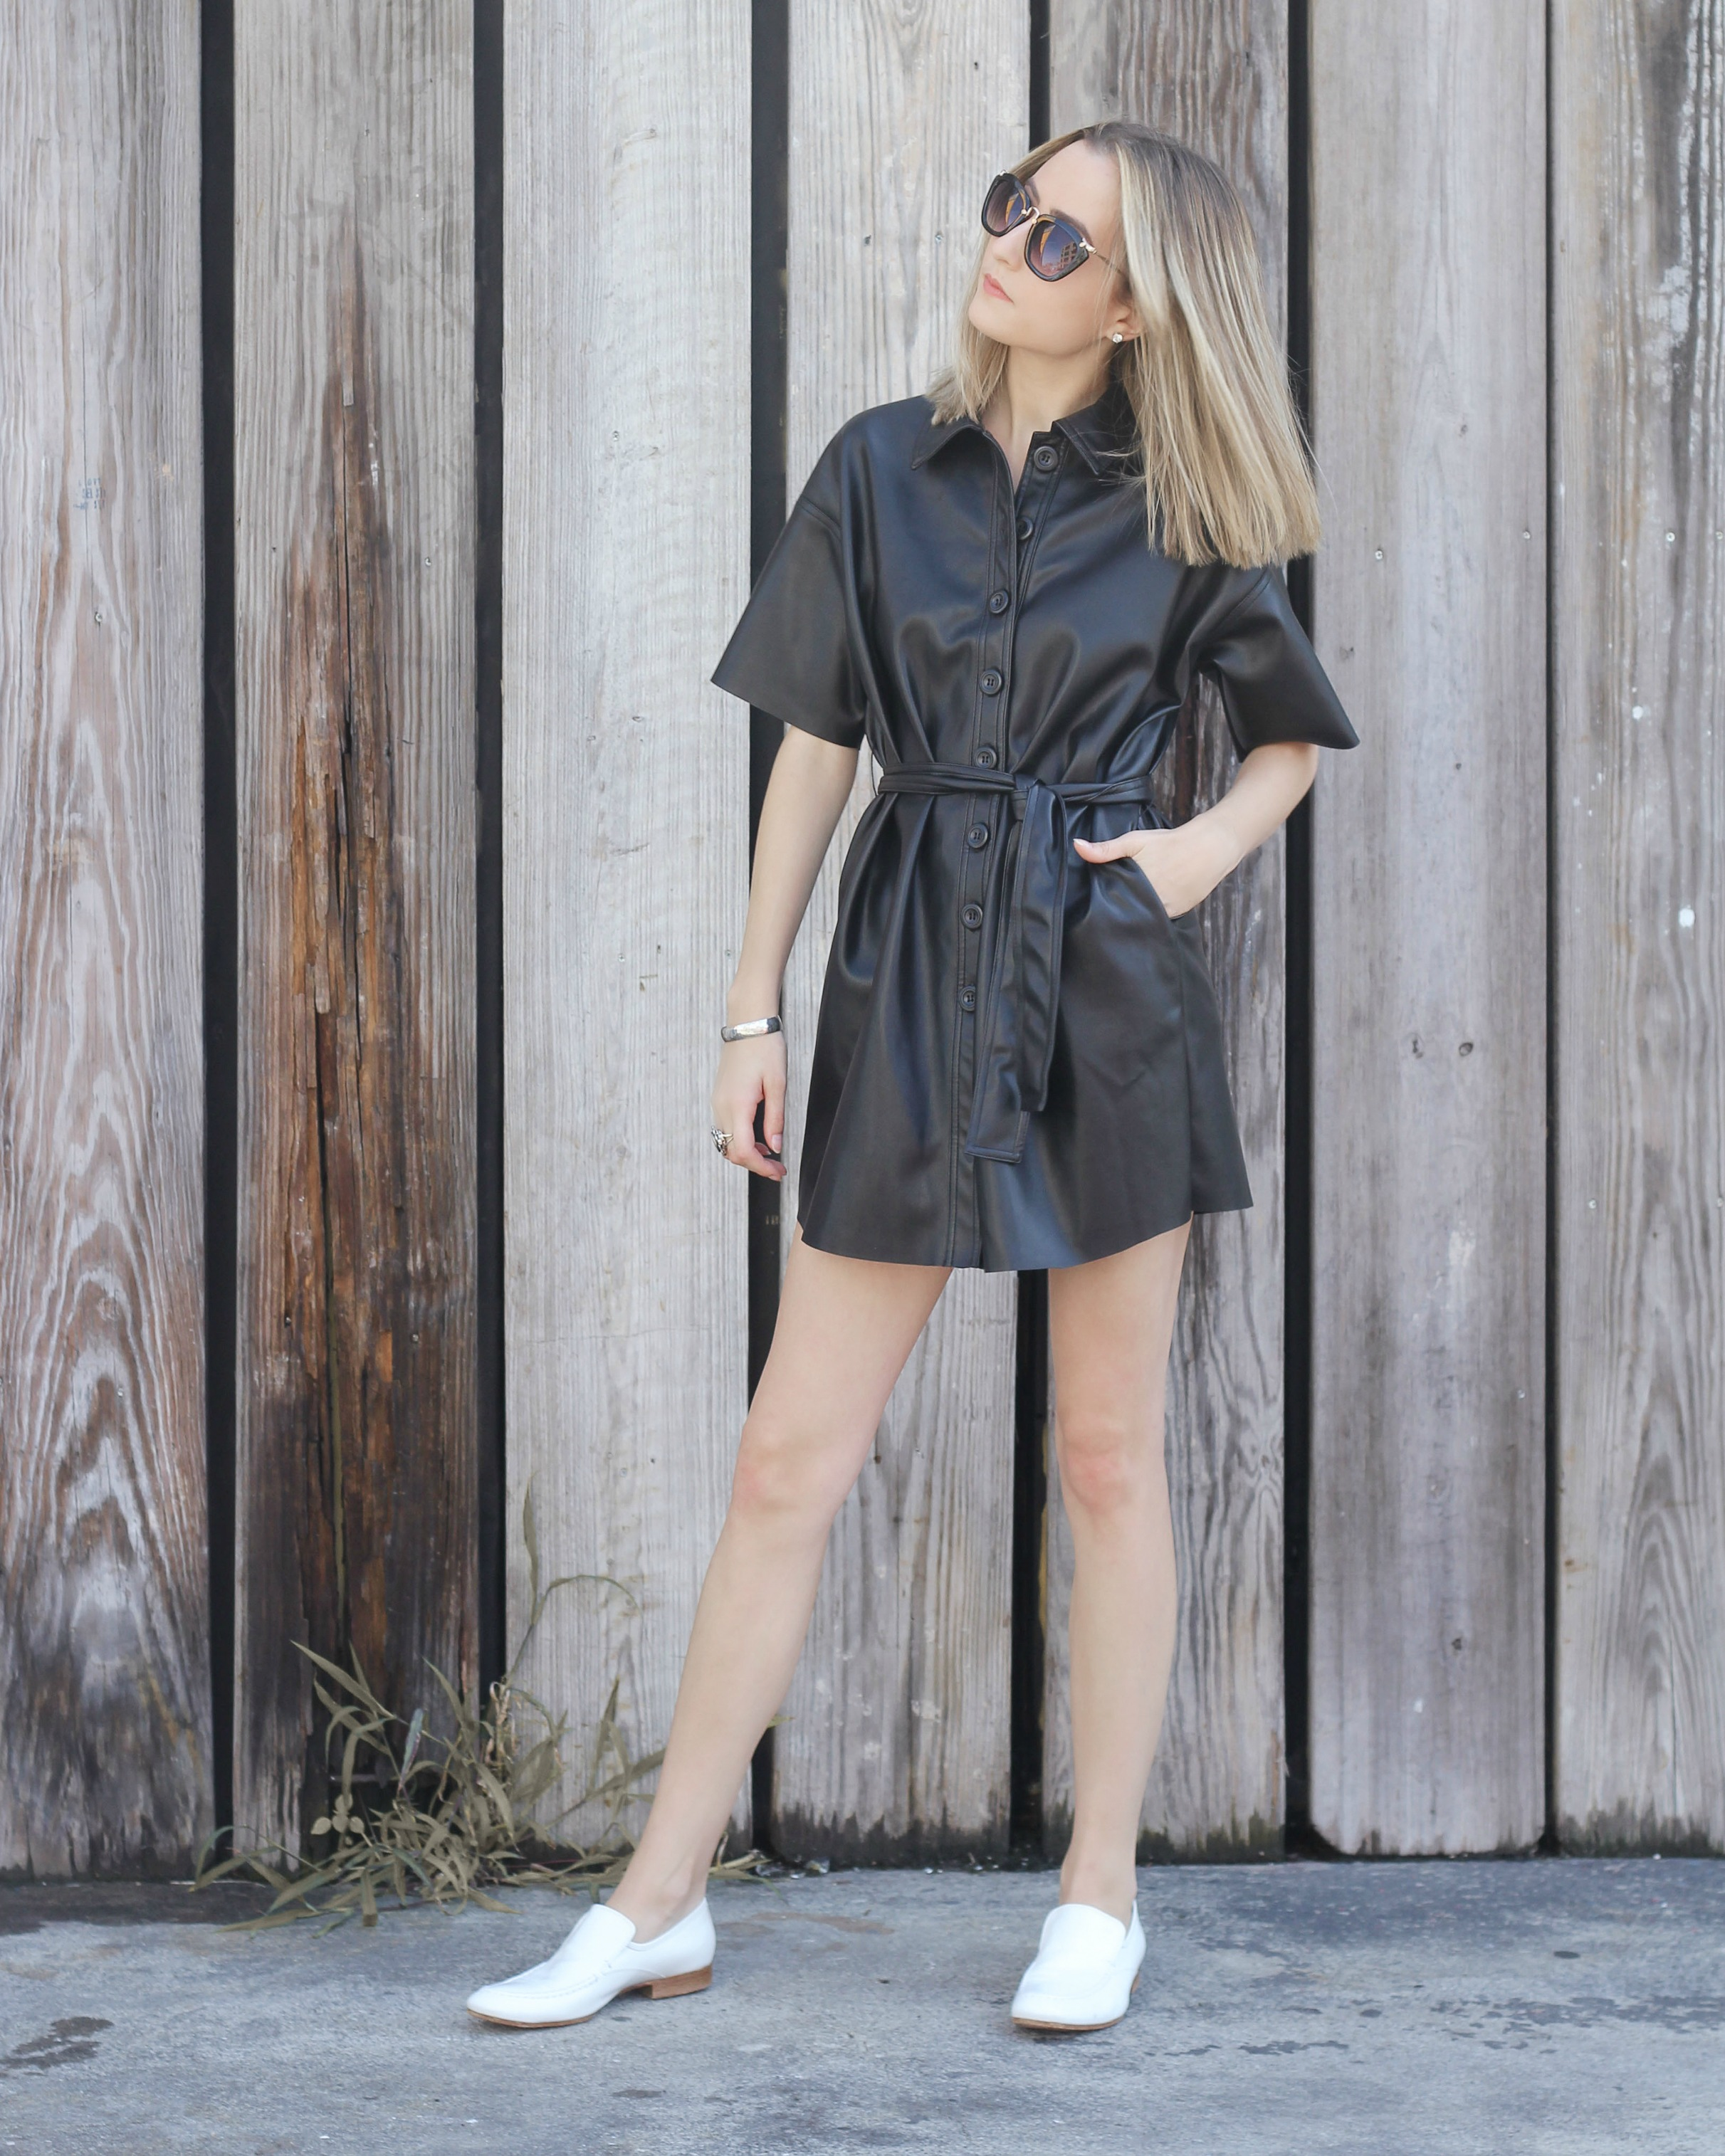 Leather Shirtdress-4.jpg